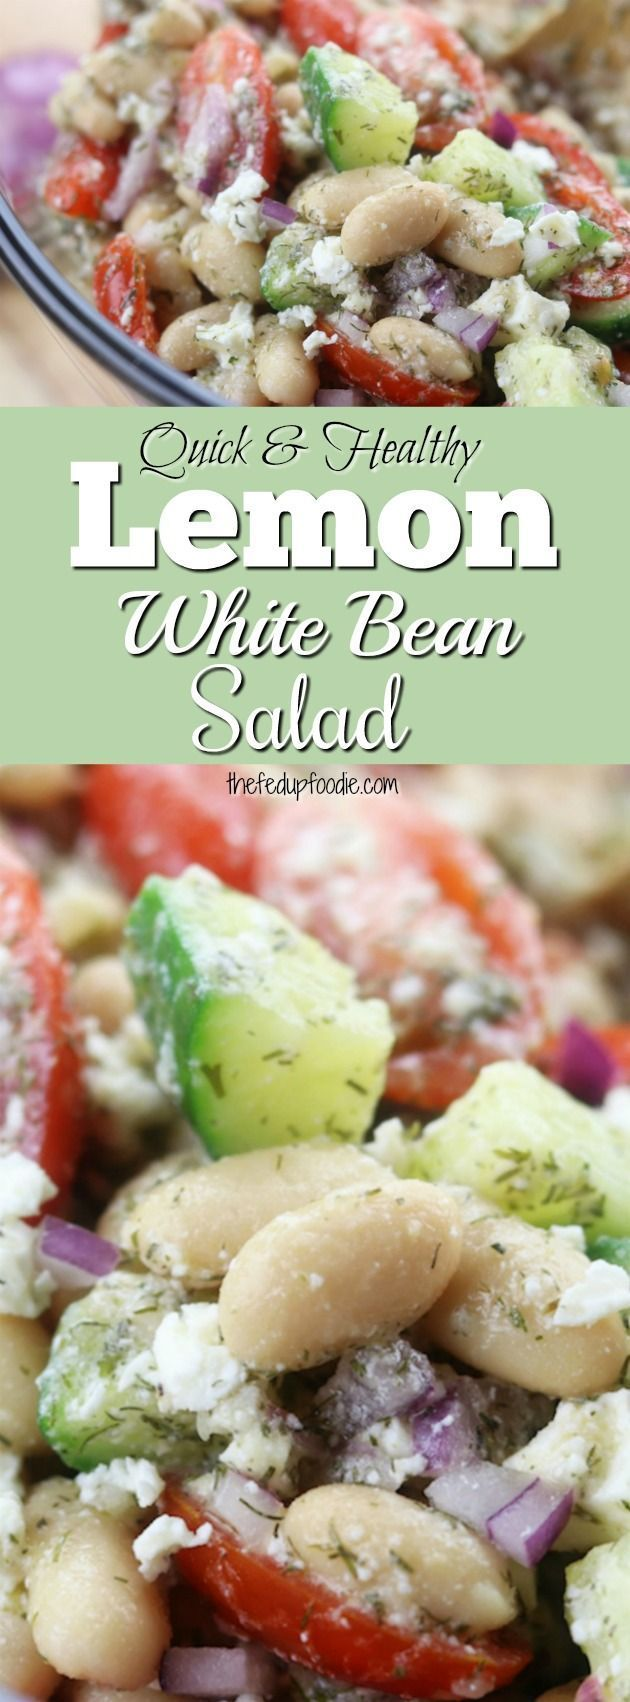 Quick and healthy, Lemon White Bean Salad is perfect as a refreshing lunch, side dish or party salad. Takes just minutes to assemble making eating well on busy days so much easier. Use vegan feta to veganize the recipe.